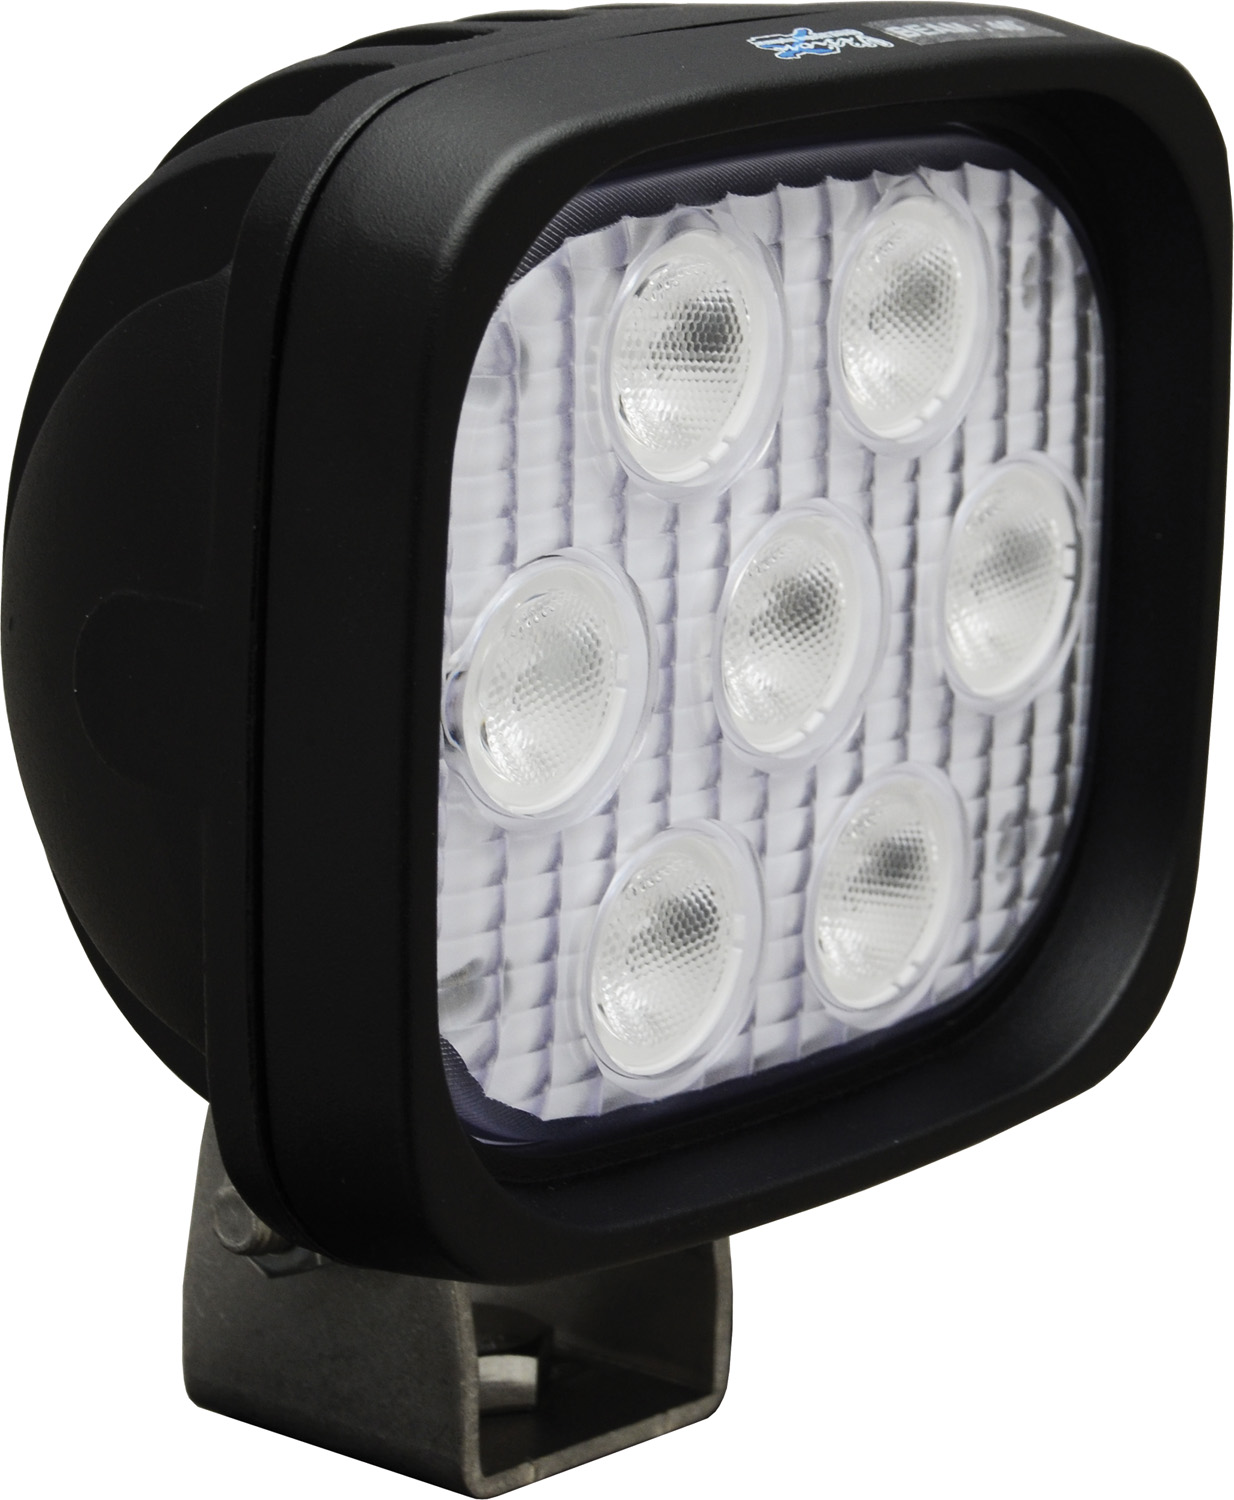 "4"" SQUARE UTILITY MARKET BLACK 7 3W BLUE LED'S 40ç WIDE"